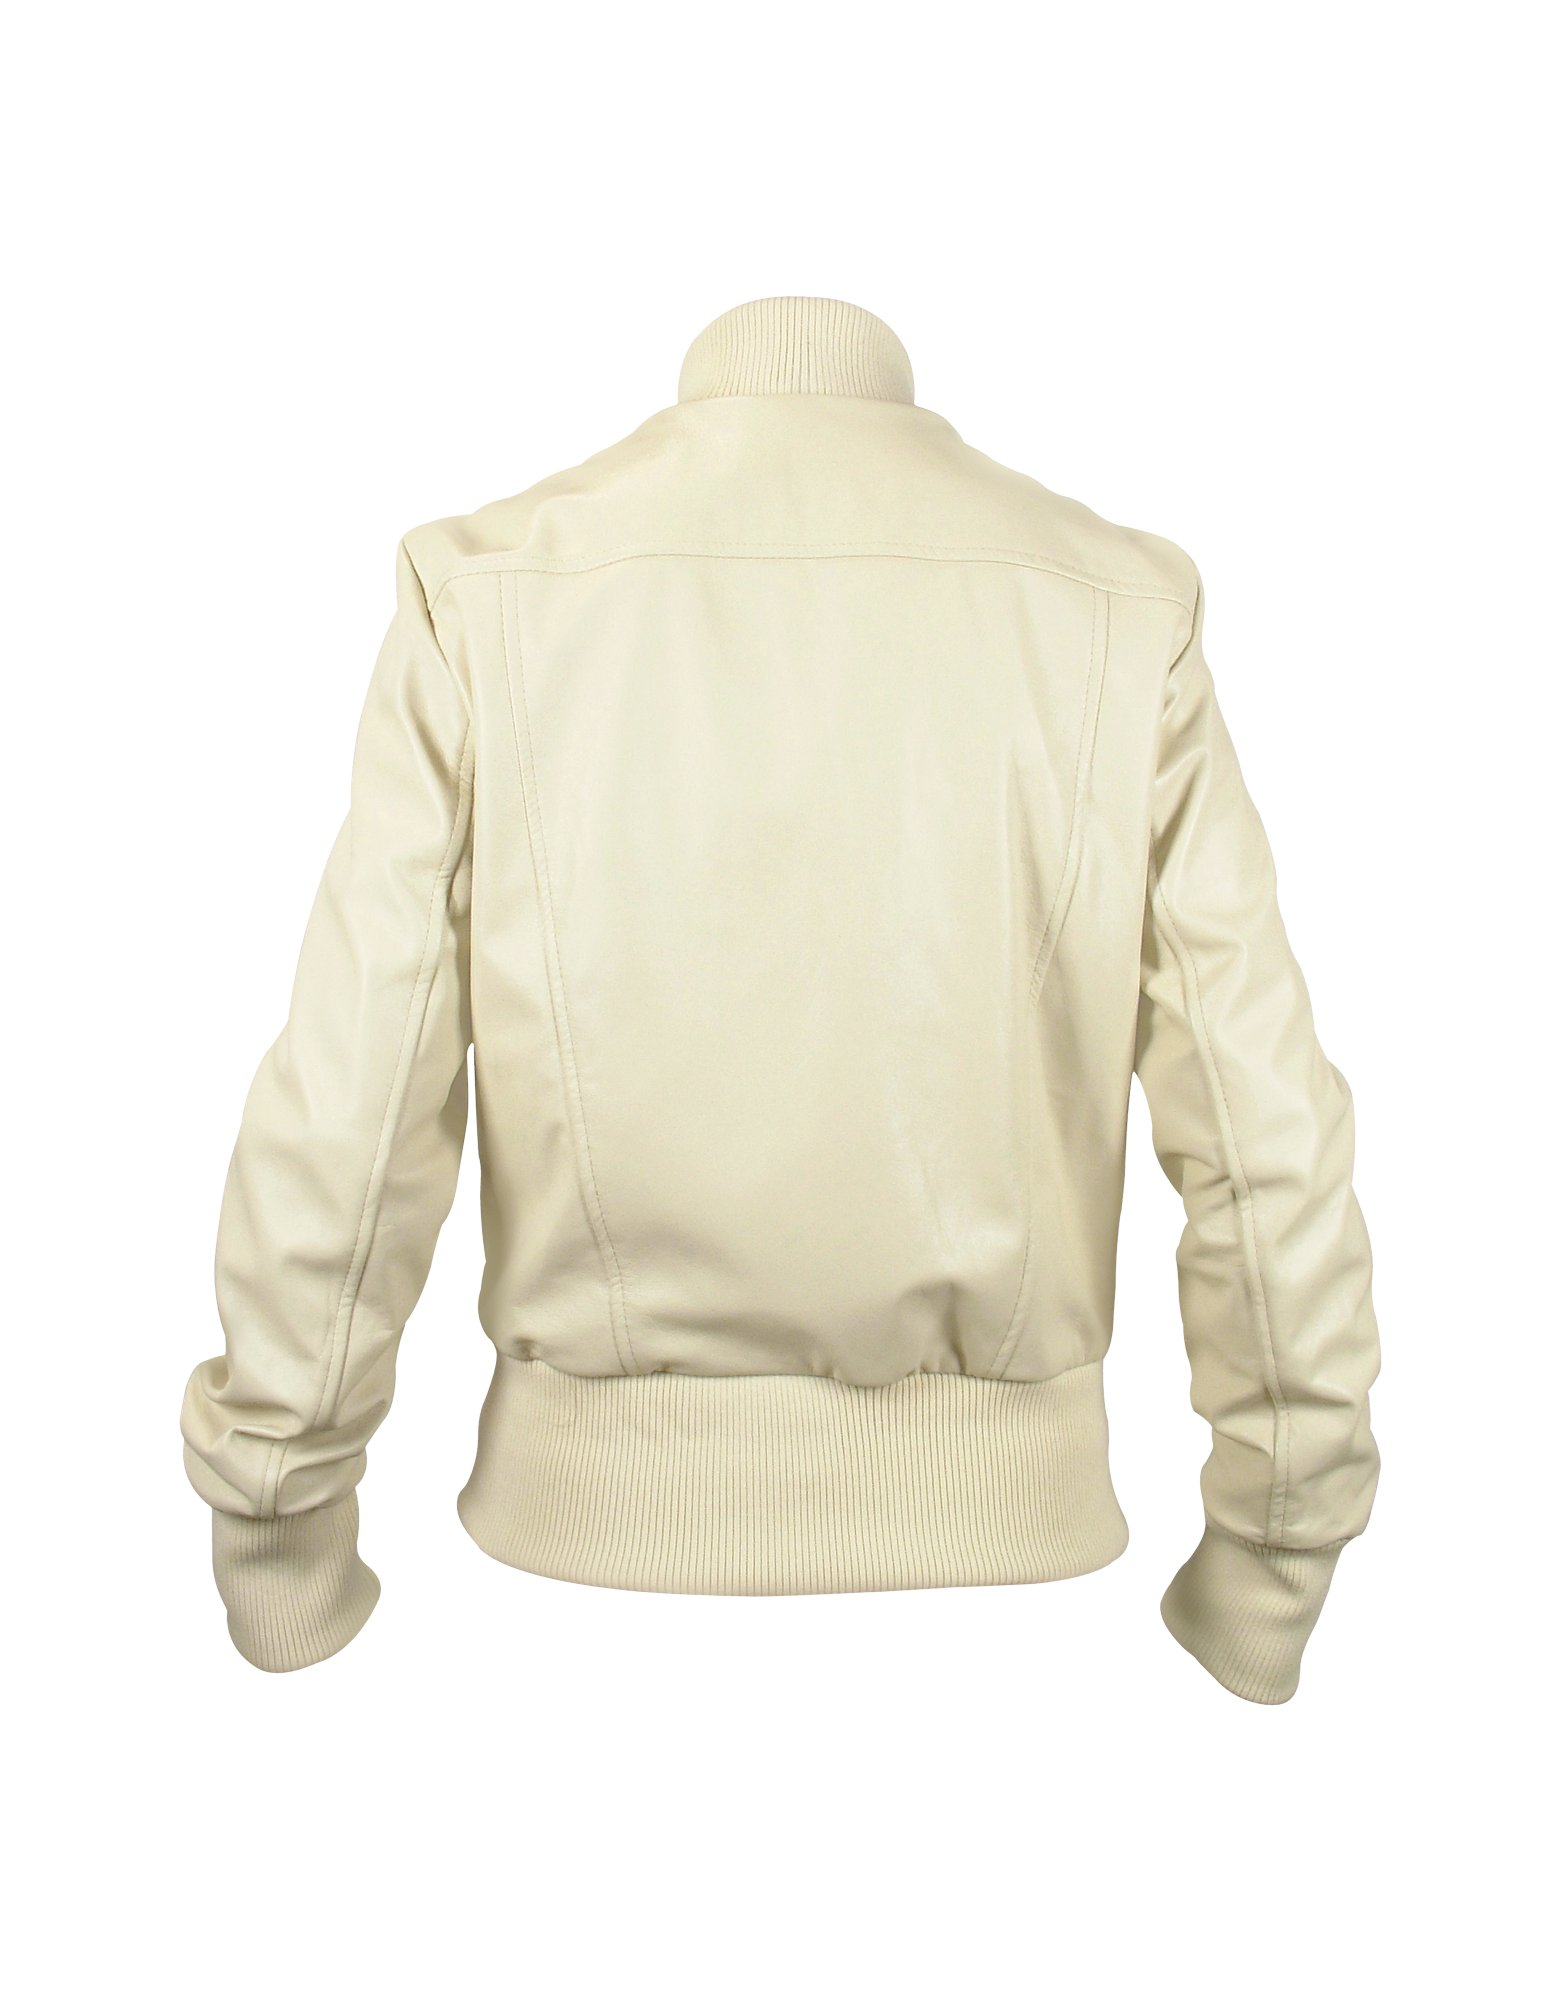 Find cream colored leather jacket at ShopStyle. Shop the latest collection of cream colored leather jacket from the most popular stores - all in one Brand Directory for Women's Leather Jackets Cream Cropped Leather Jacket White Faux Women's Leather Jackets White Soft Women's Leather Jackets White Trimmed Women's Leather Jackets White.